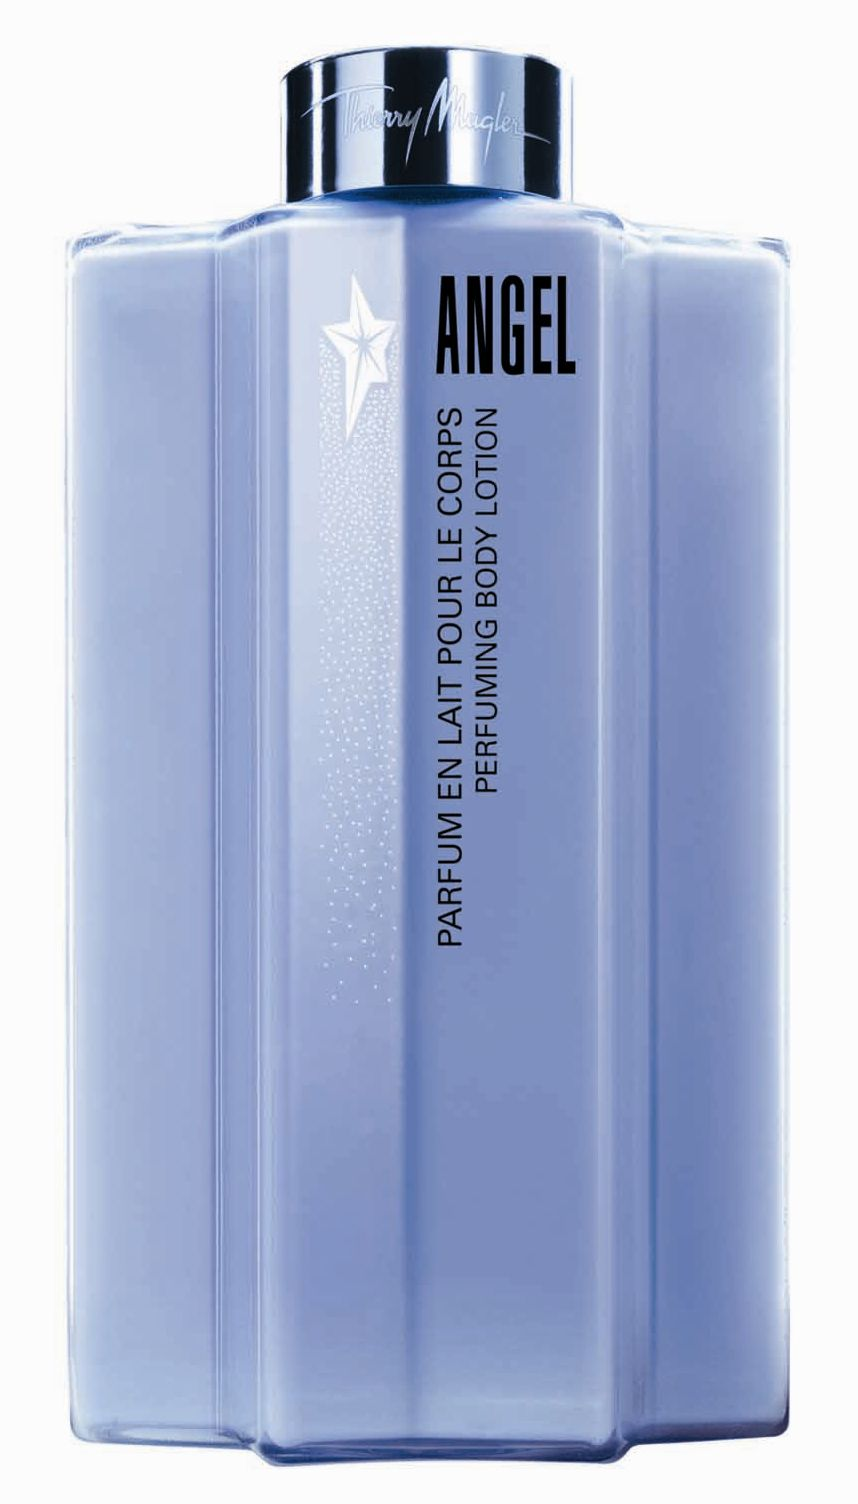 Thierry Mugler Angel Perfume Body Lotion 200ml